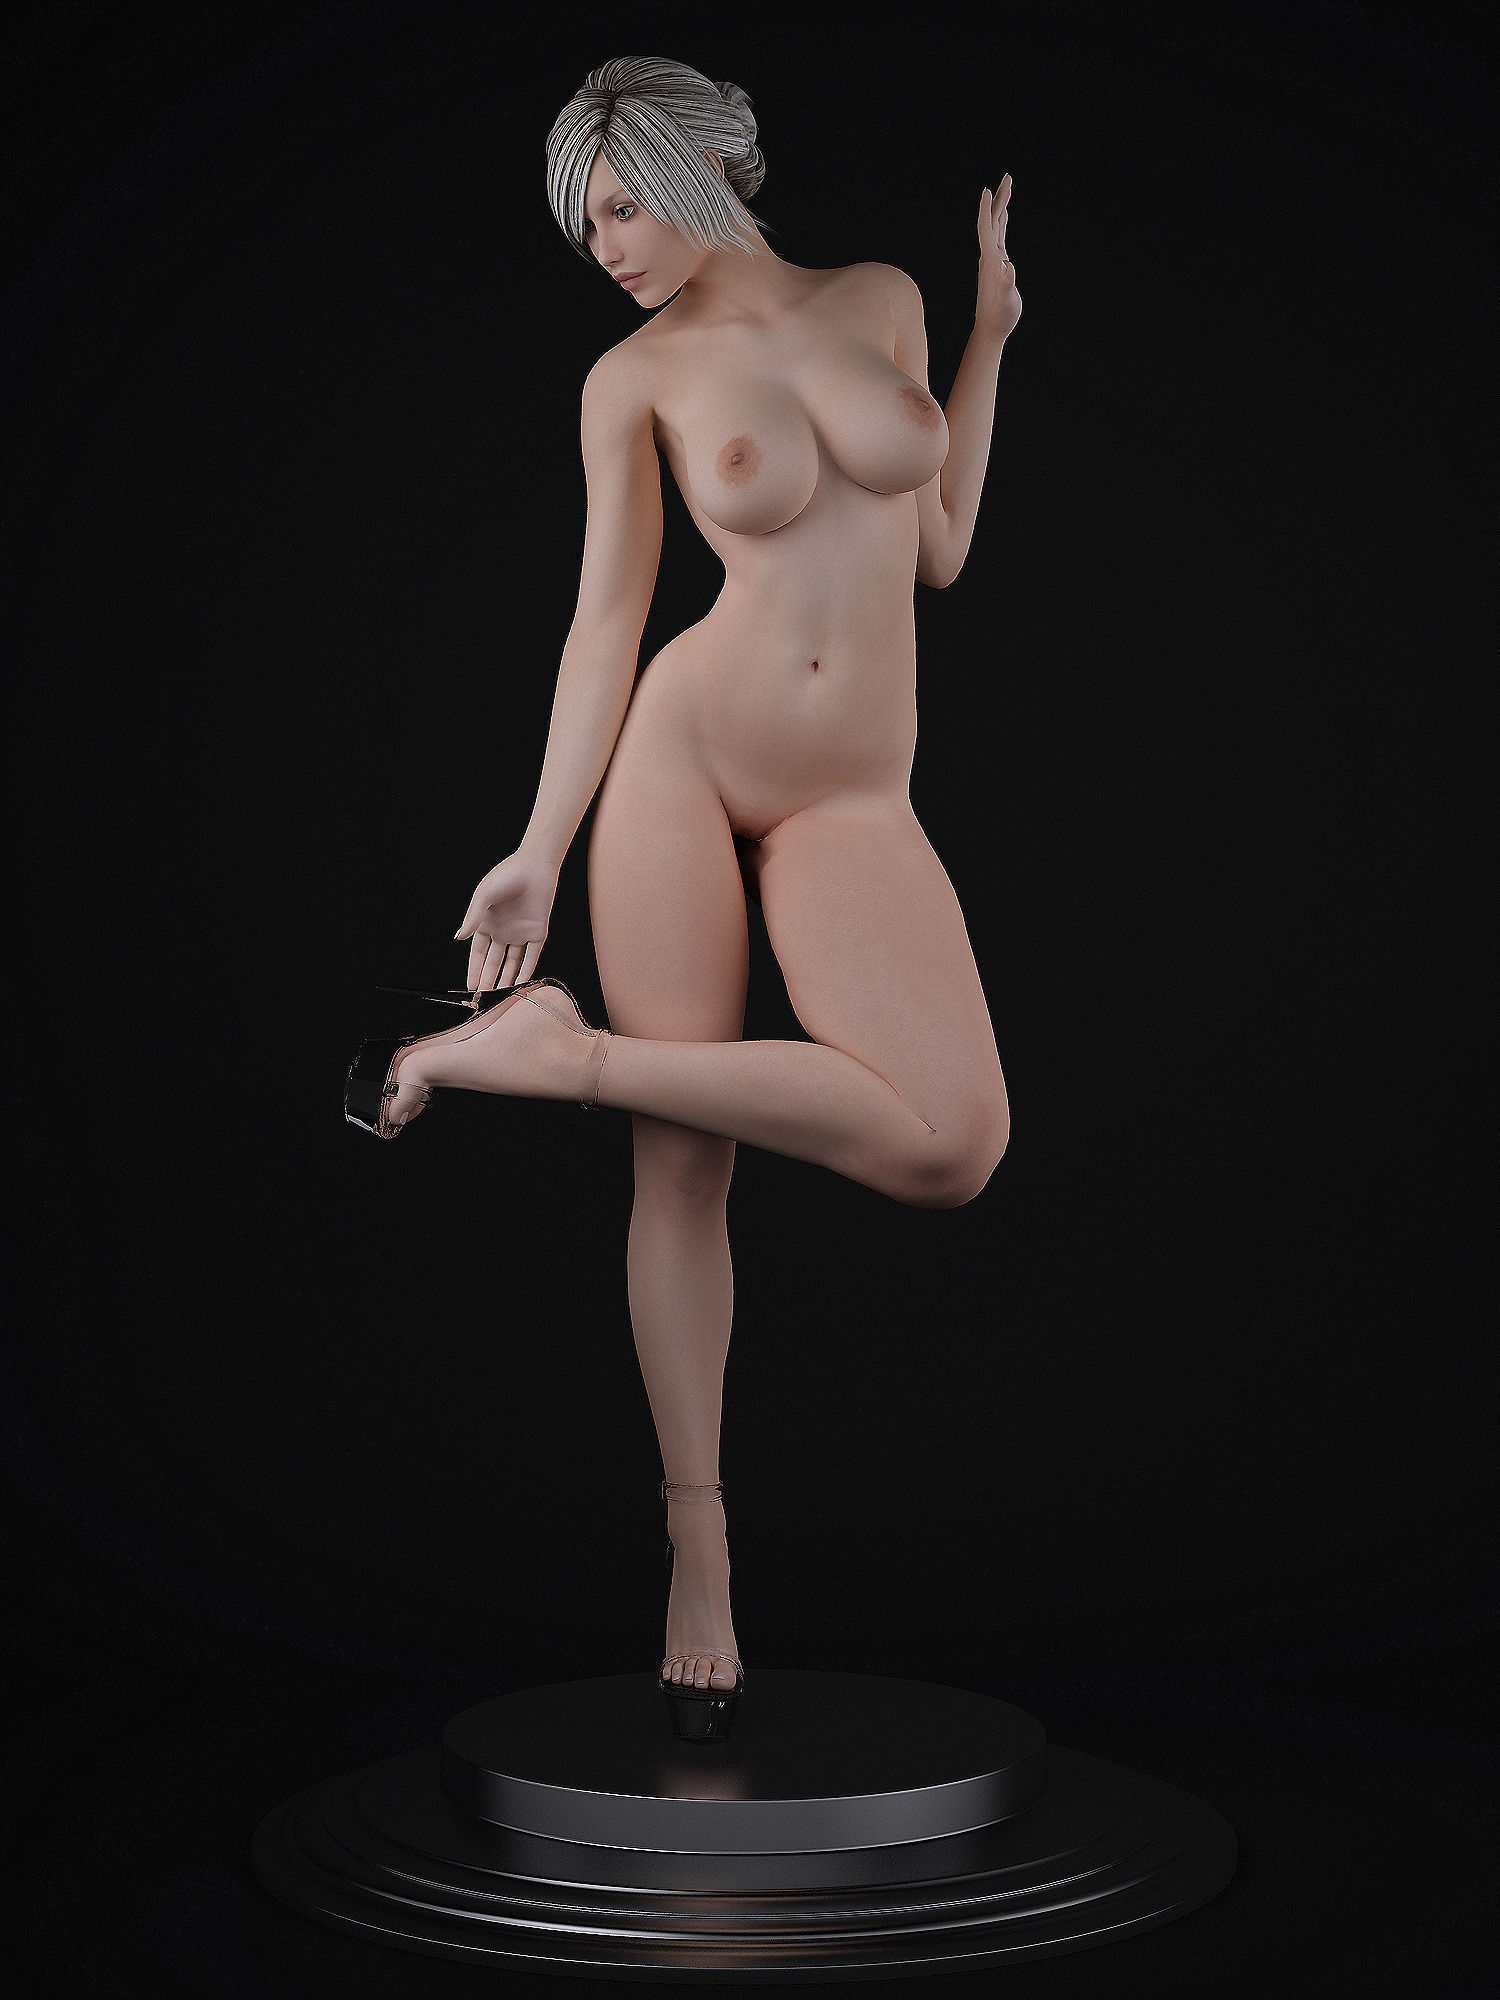 Nude gmod player models nude photo